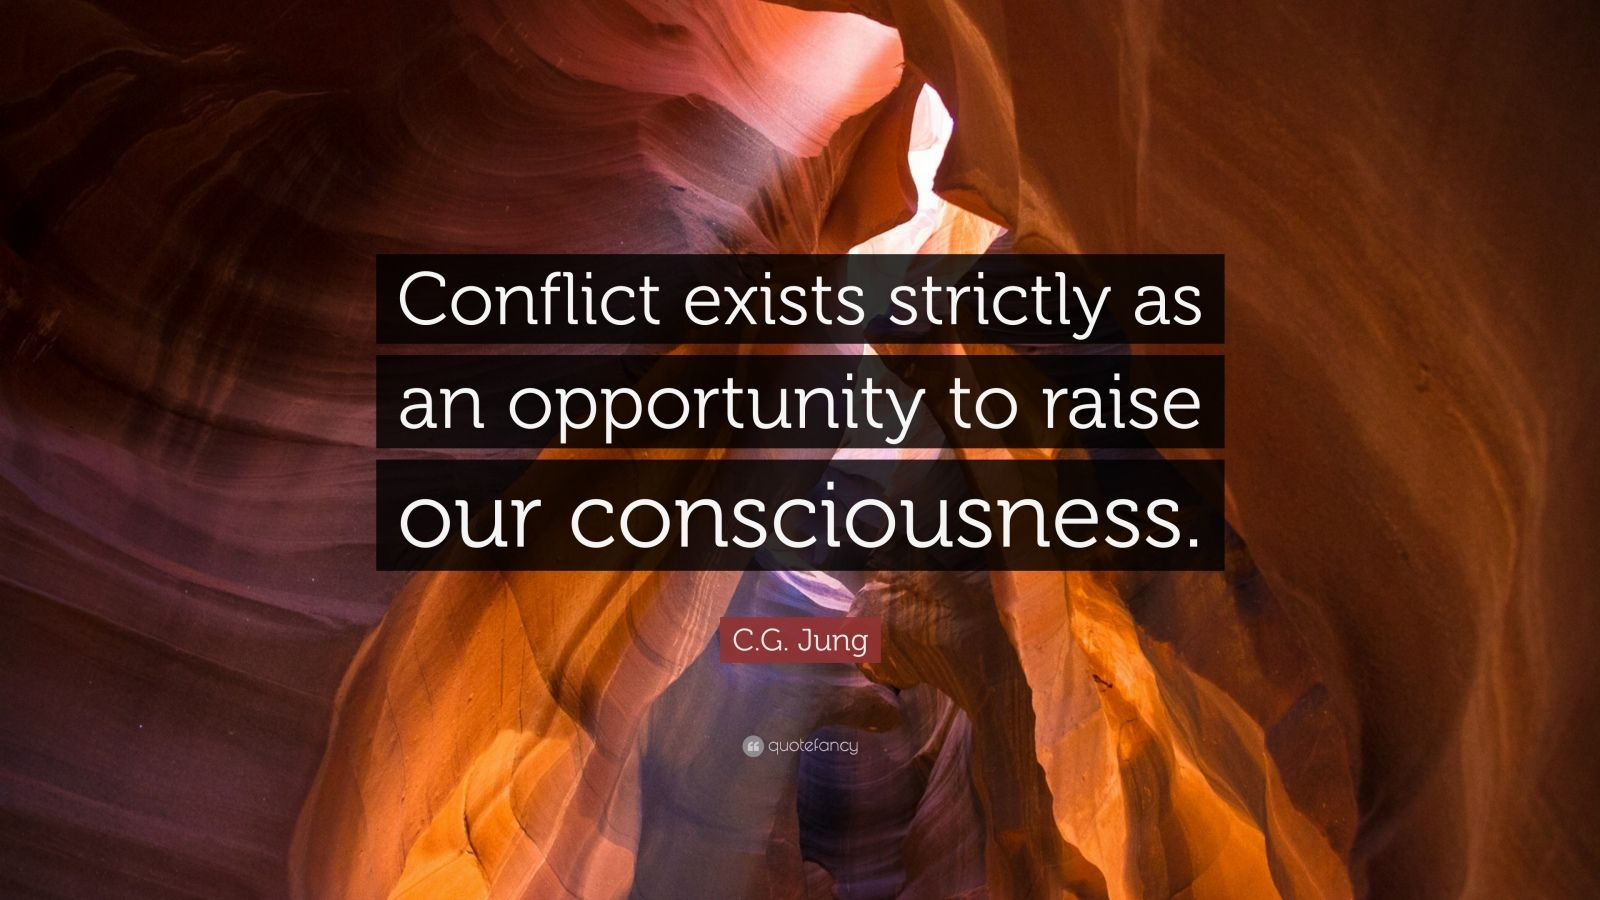 """C.G. Jung Quote: """"Conflict exists strictly as an opportunity to raise our consciousness."""""""